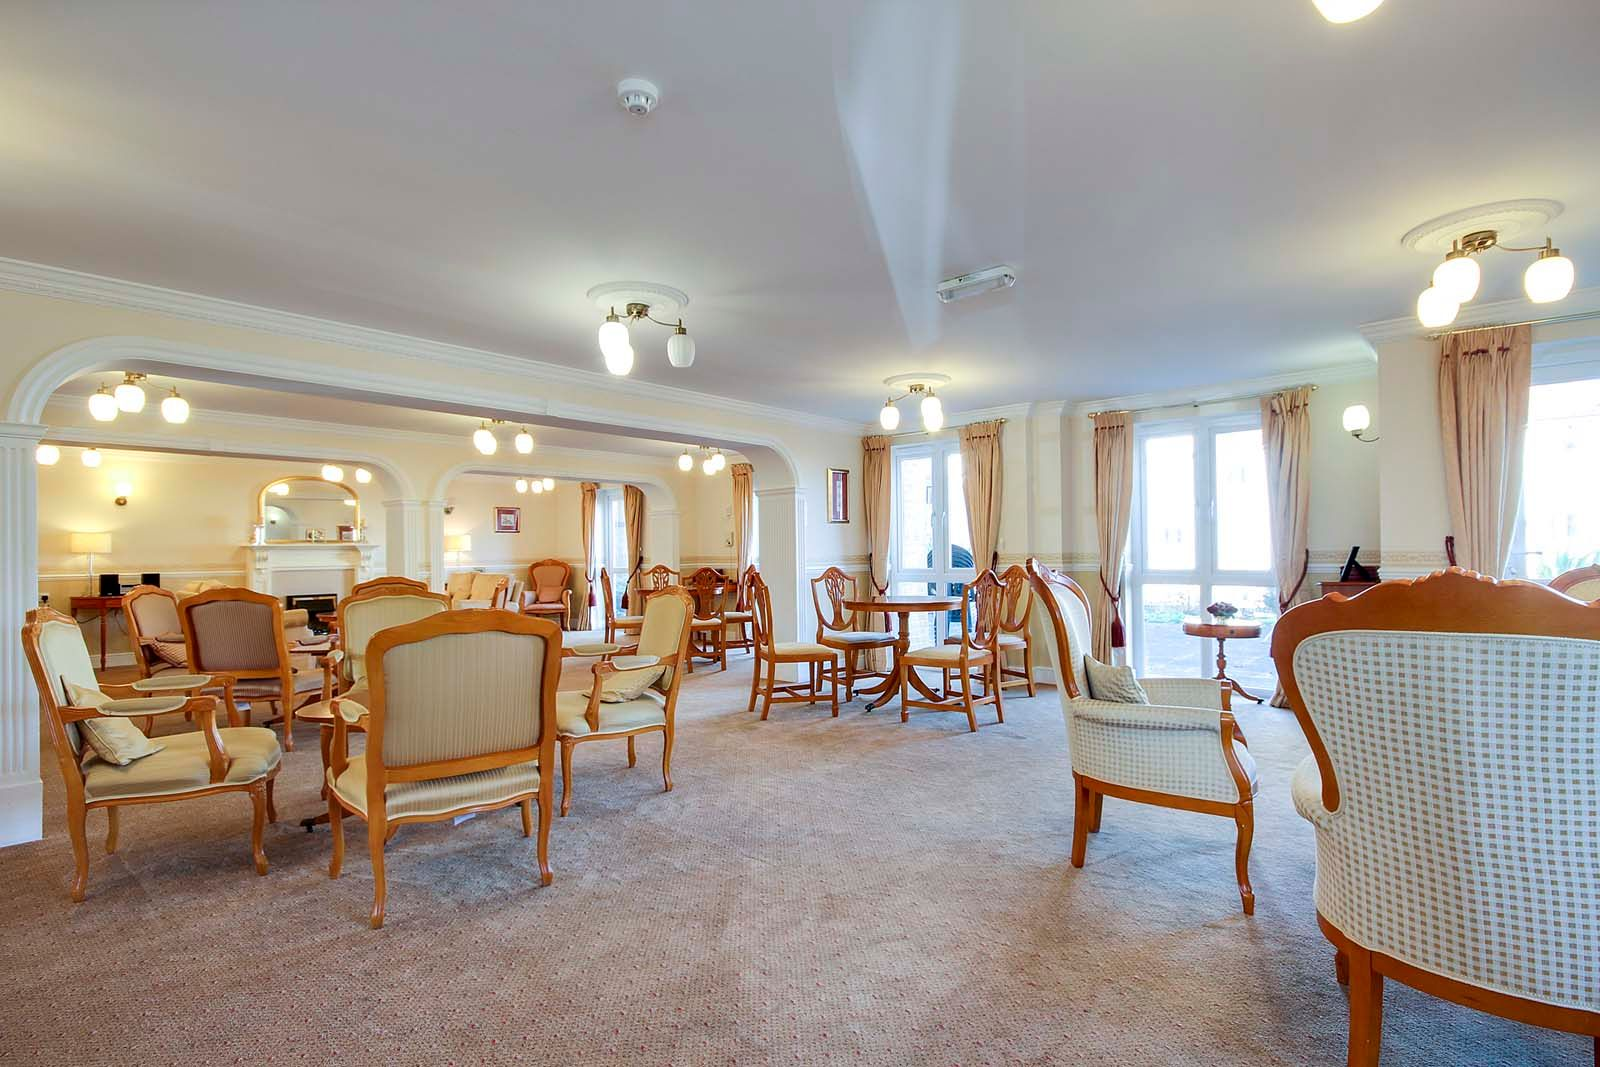 1 bed for sale in East Preston - Photo 9 (Property Image 7)